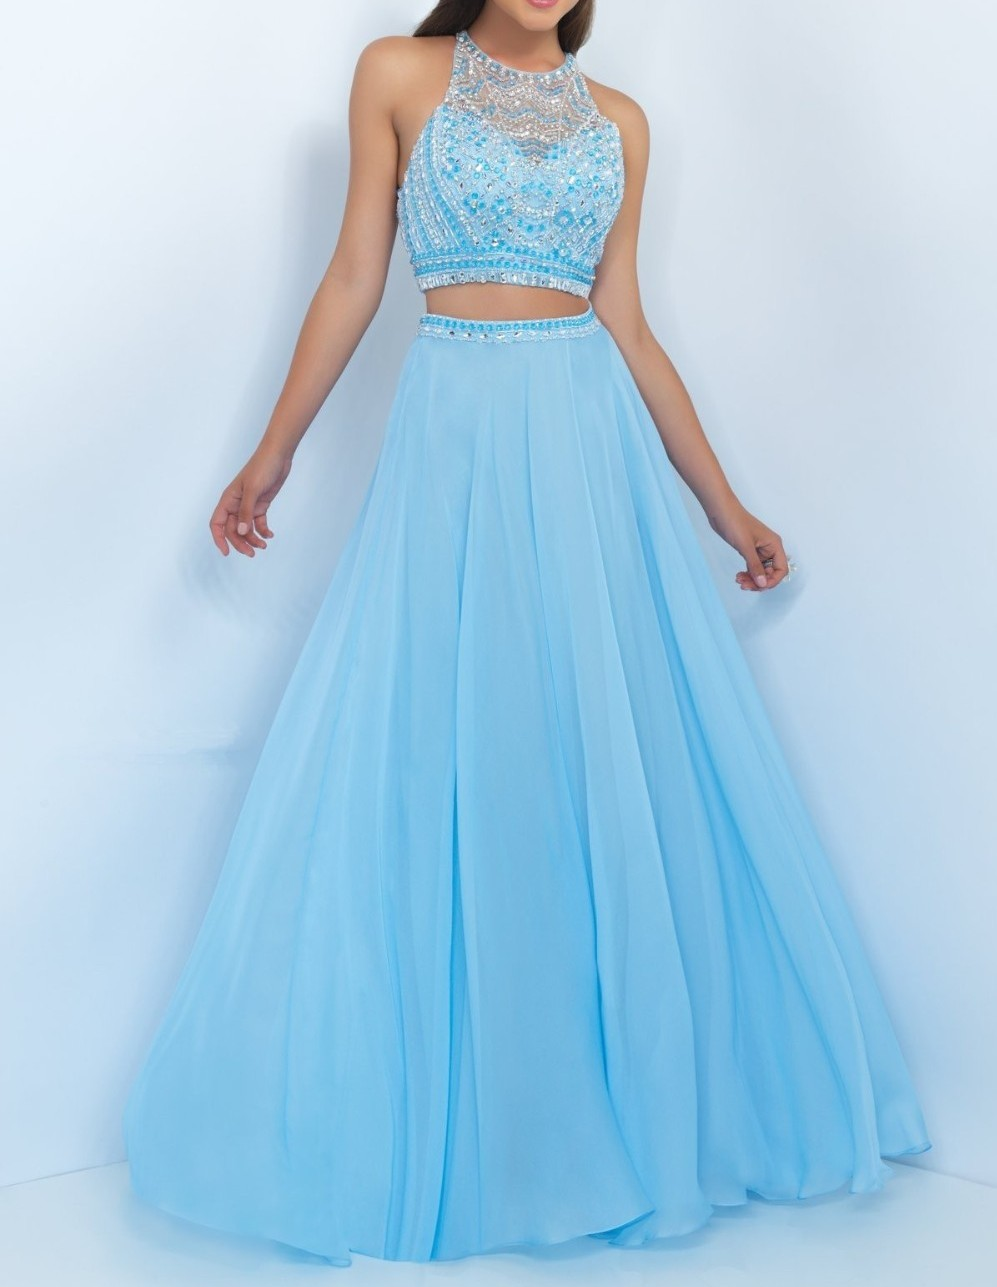 High Quality Halter Top Evening Gowns-Buy Cheap Halter Top Evening ...